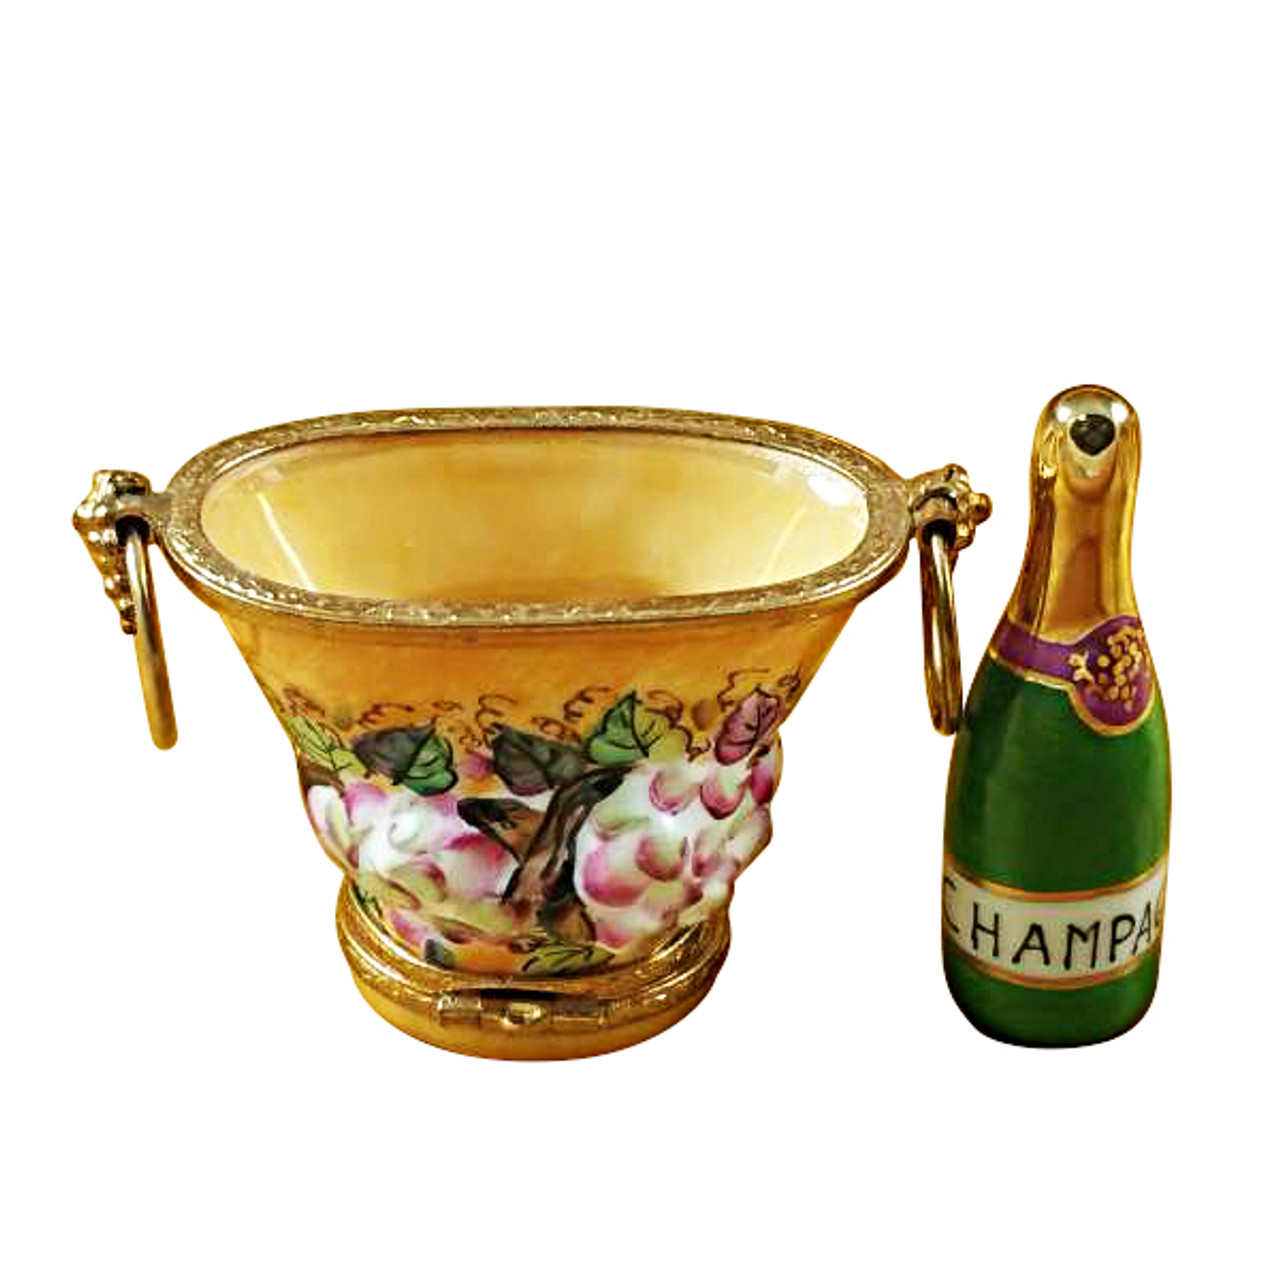 Limoges Imports Champagne Bucket W/Grapes Limoges Box